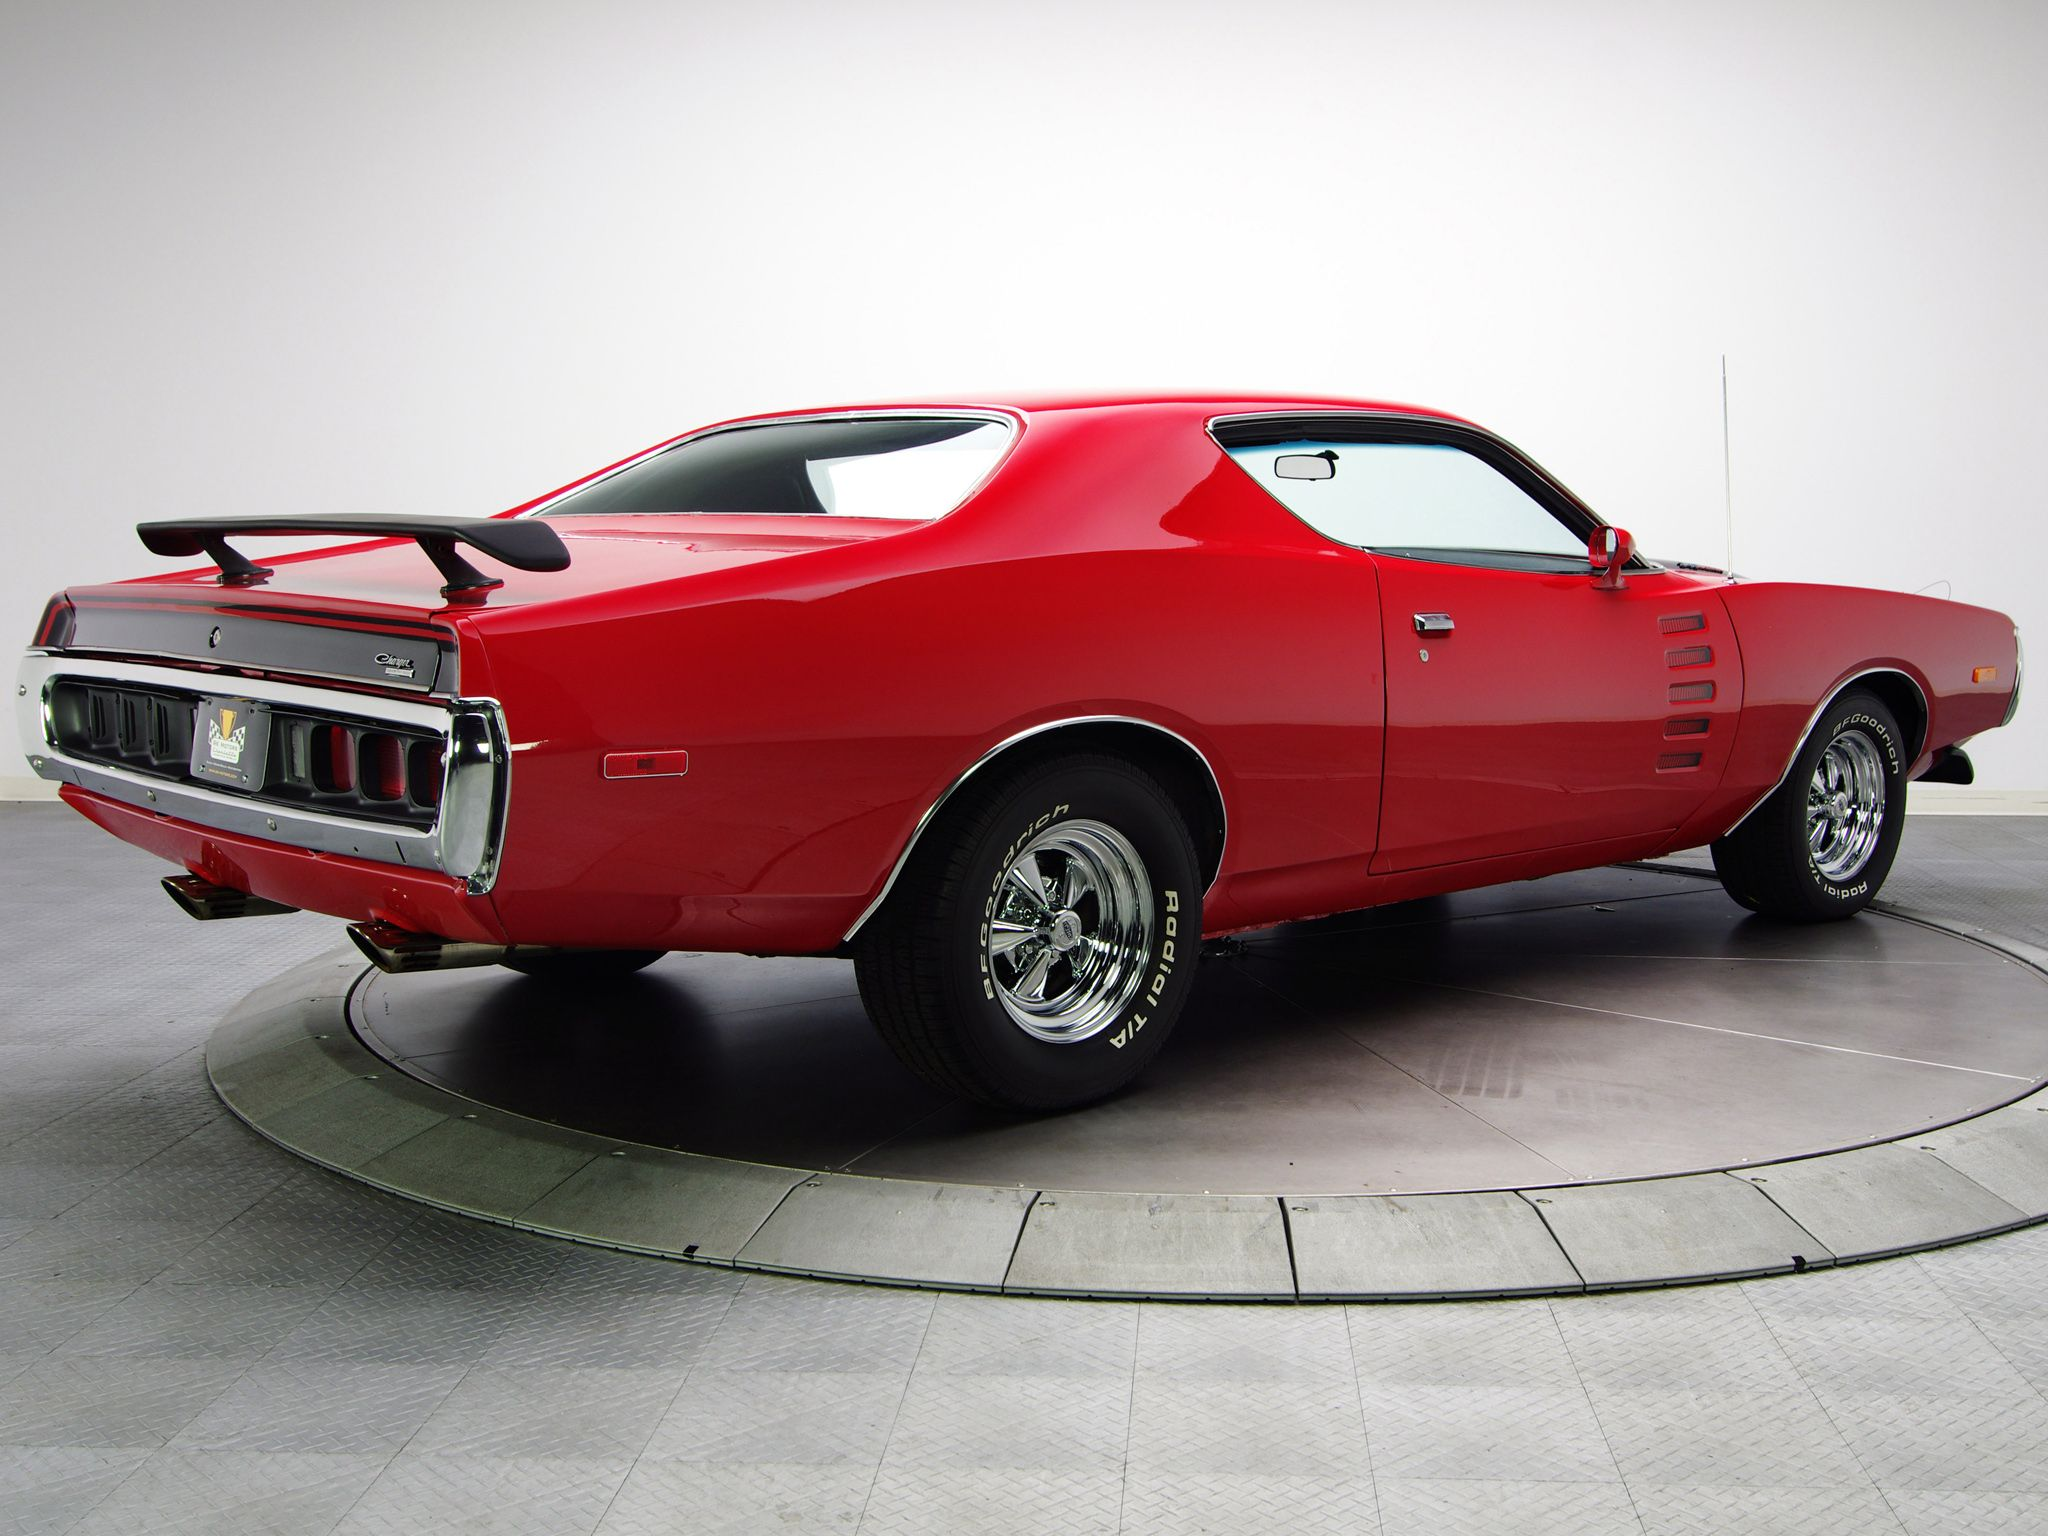 Dodge charger rally 340 magnum 1972 description from pinterest com i searched